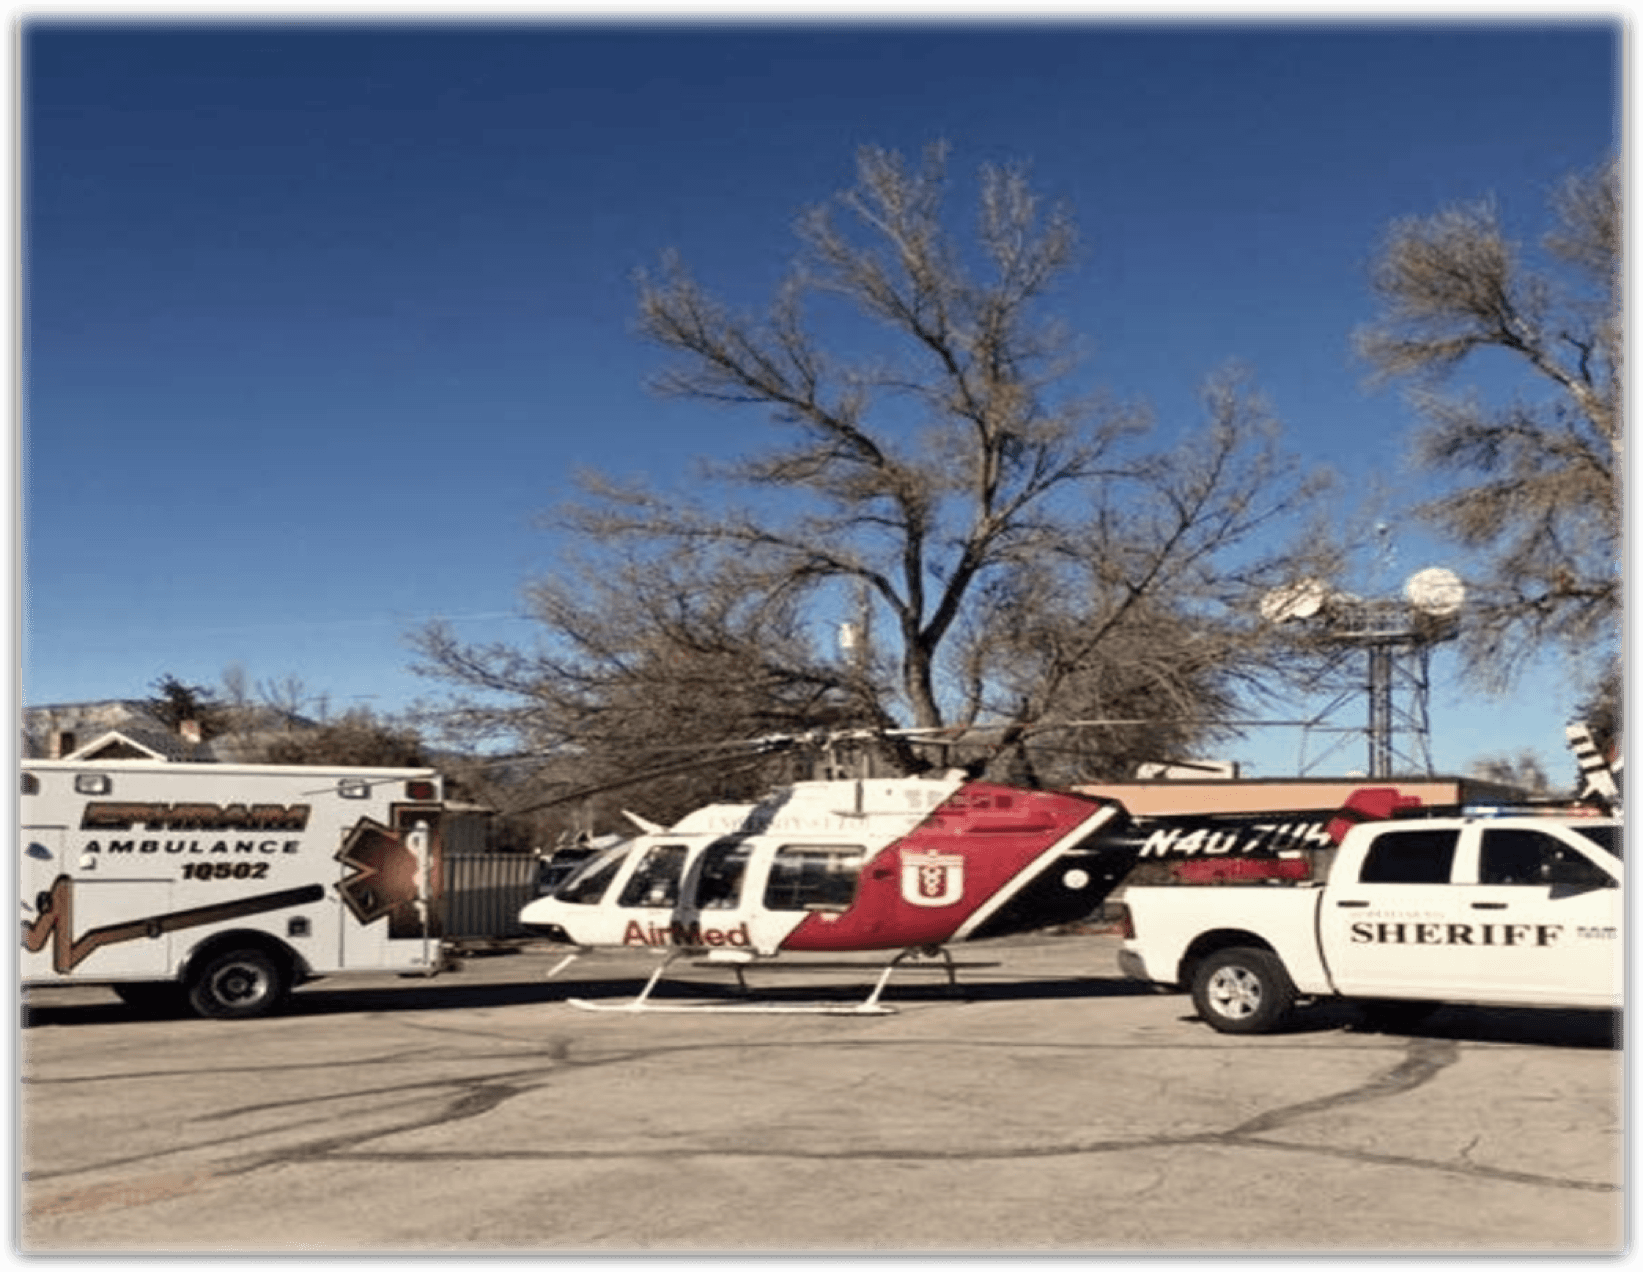 Vehicles: Ambulance, Helicopter, Sheriff